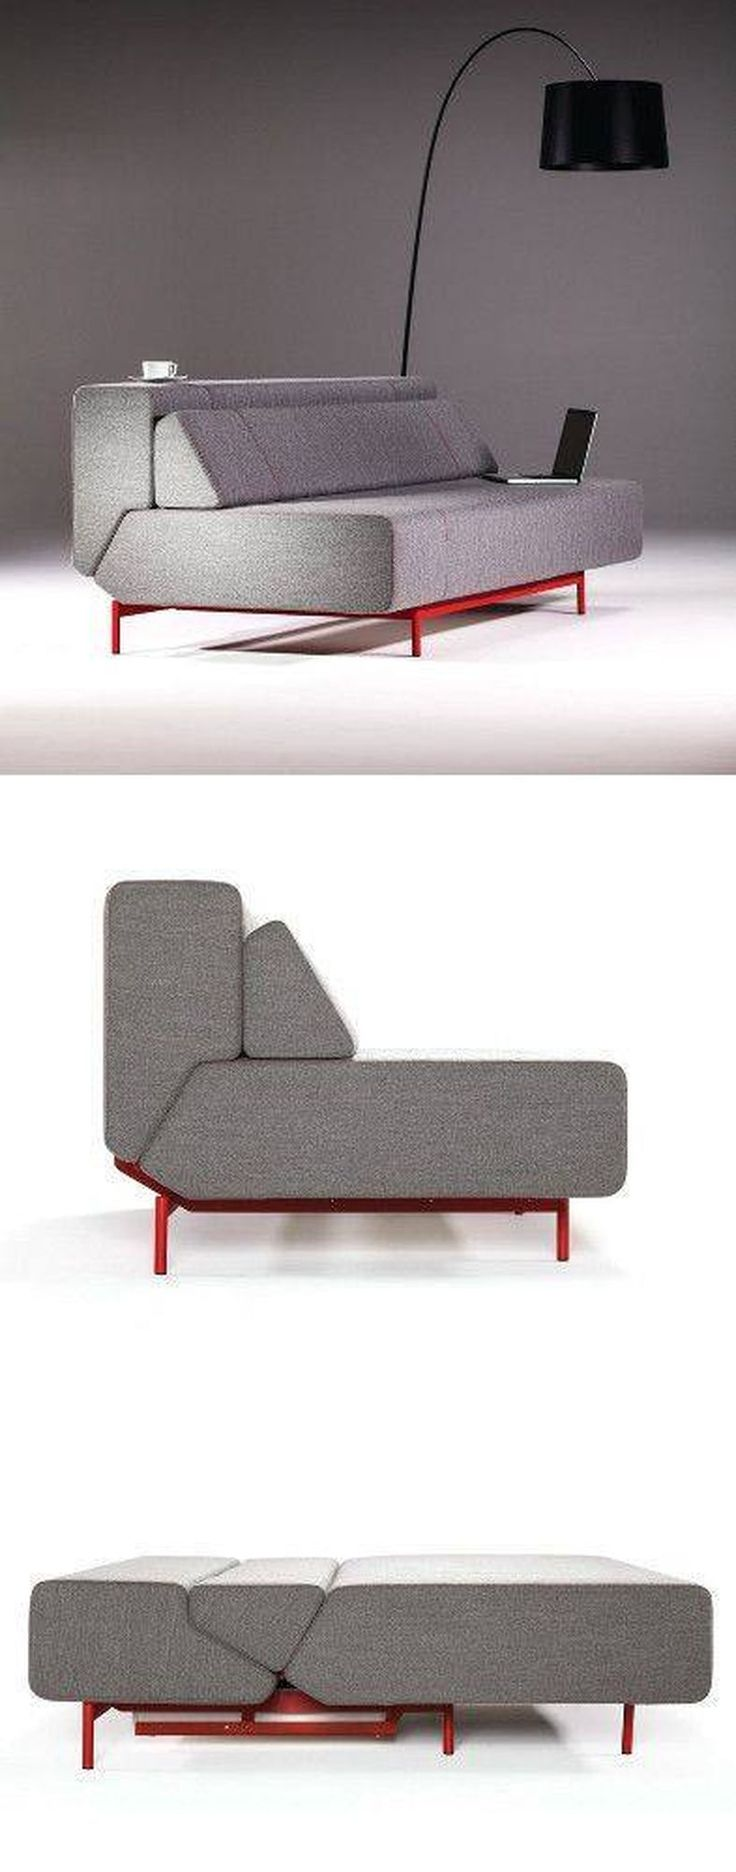 158 best Awesome Furniture images on Pinterest   Couches, Canapes ...